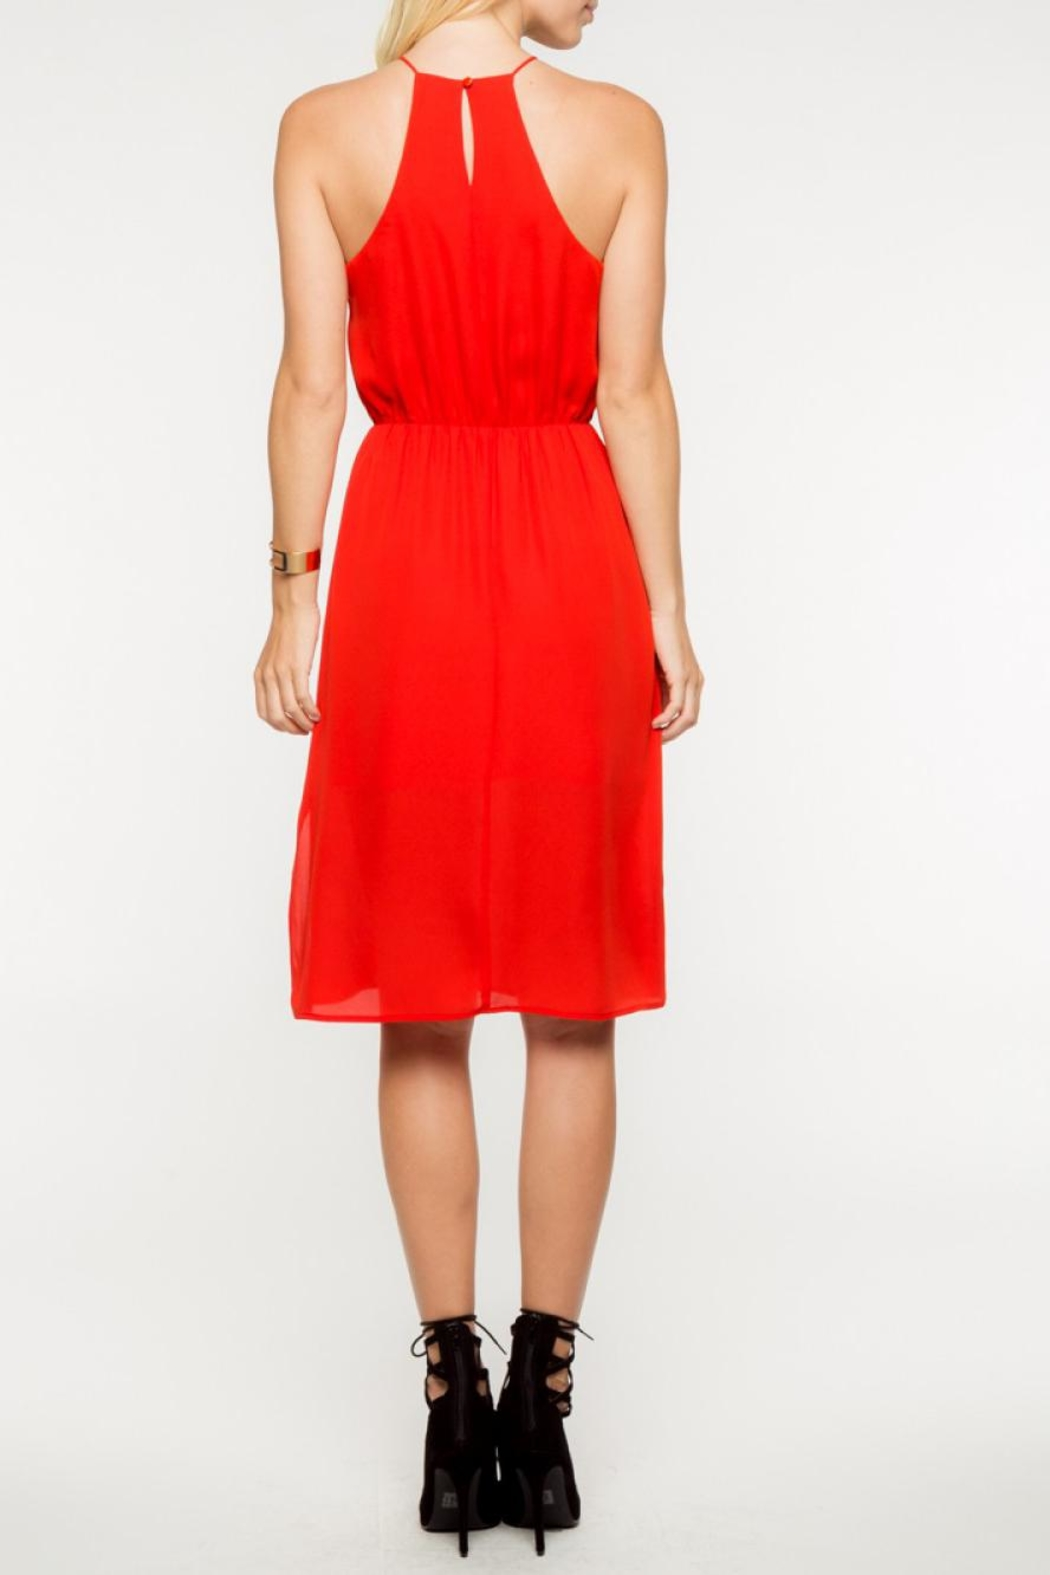 Everly Red Midi Dress - Side Cropped Image